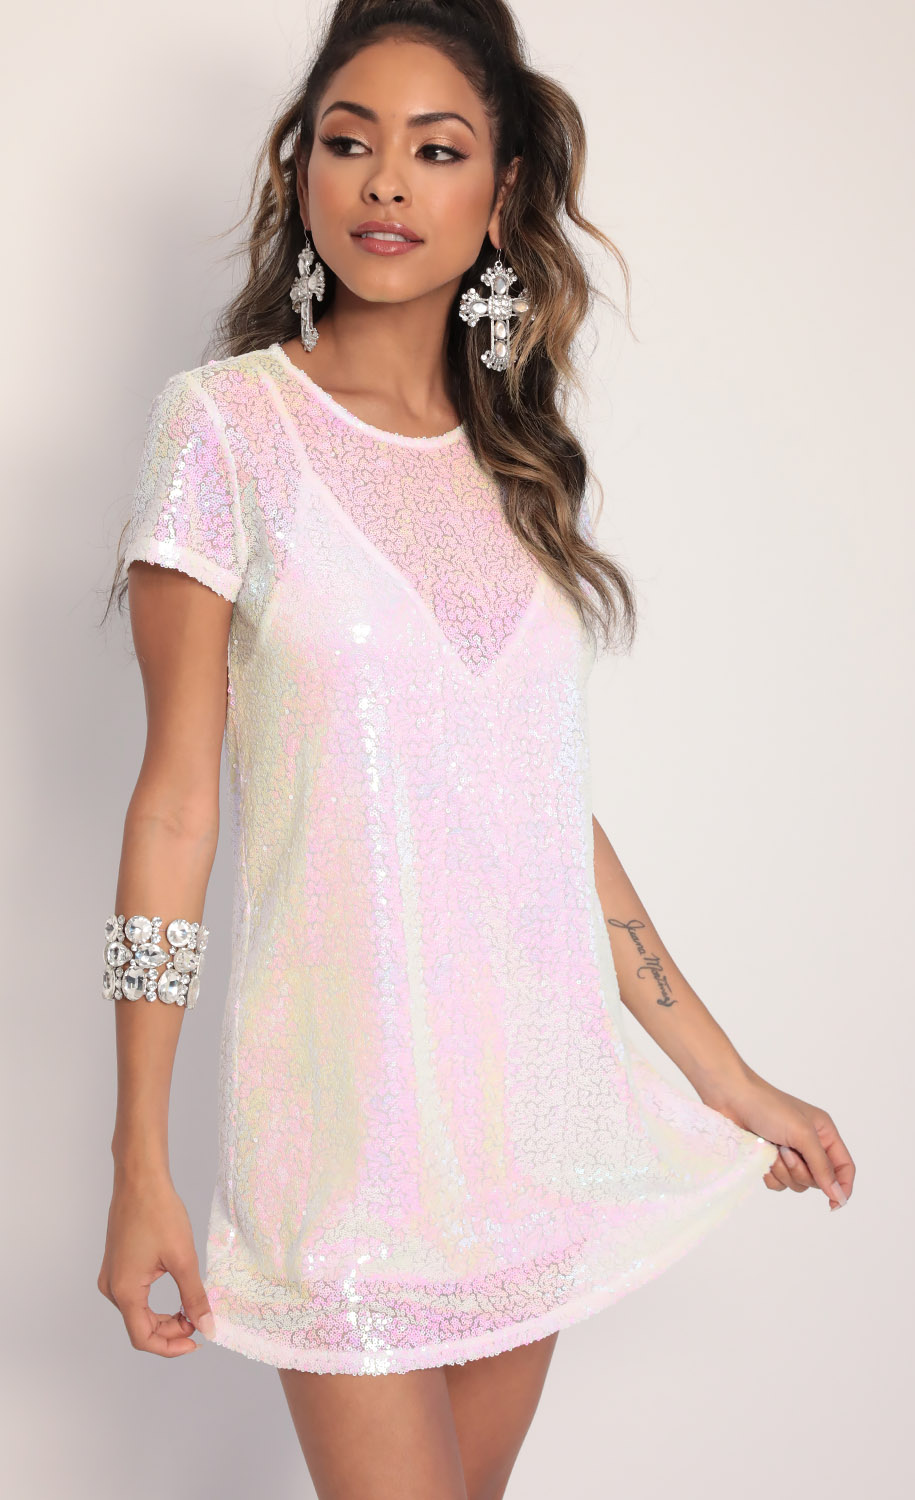 Party Sequin Shift Dress in White Iridescence